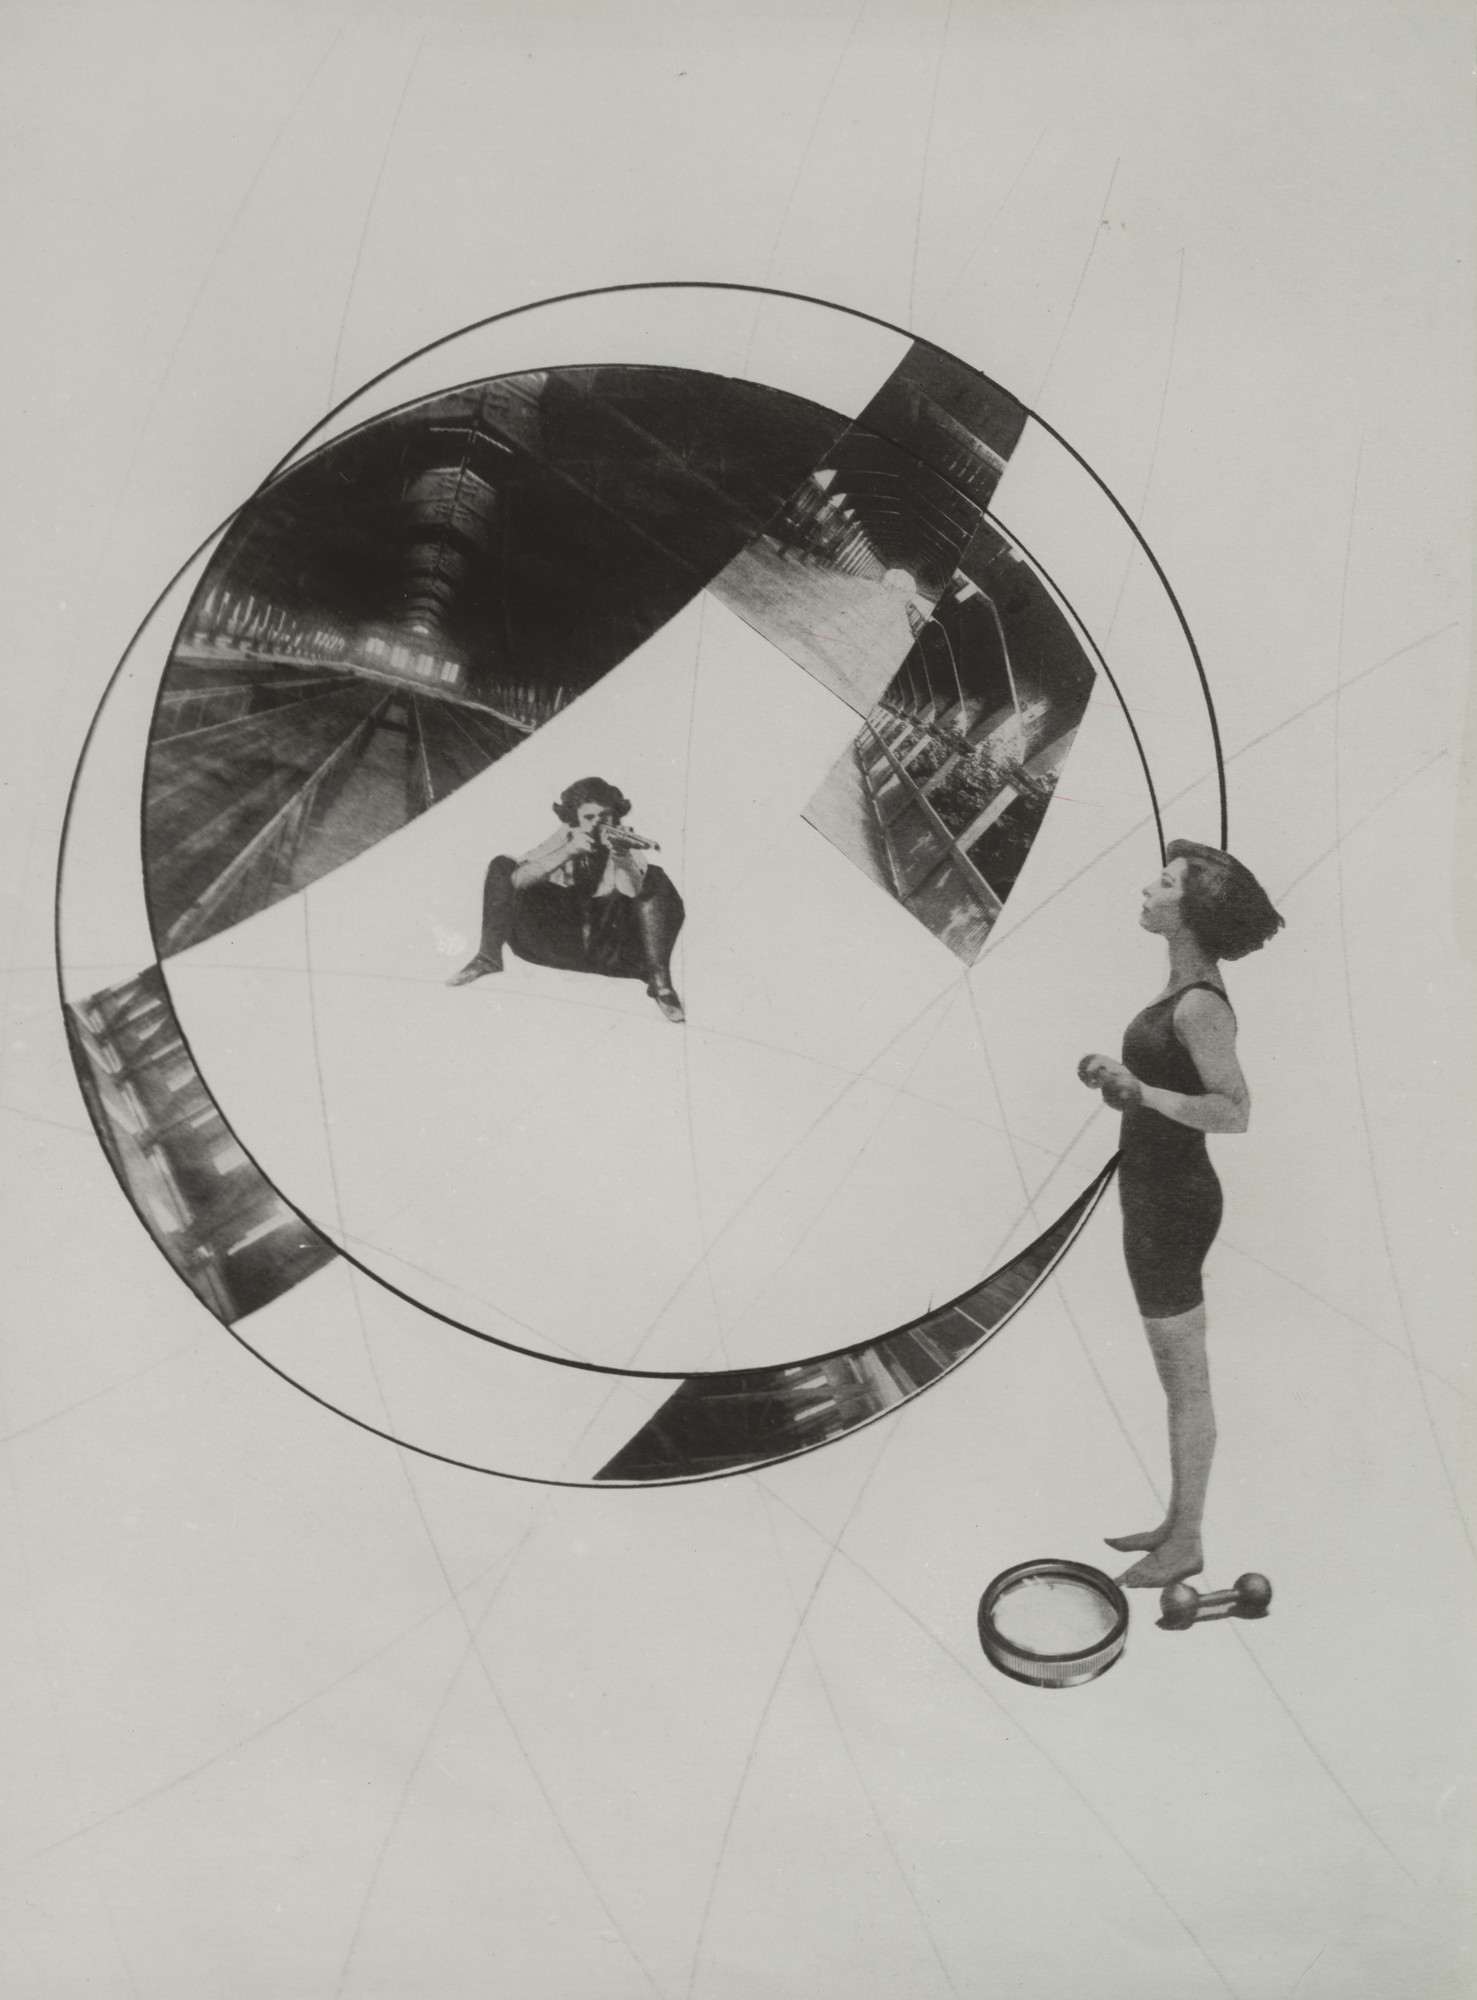 László Moholy-Nagy. Love Your Neighbor; Murder on the Railway. 1925